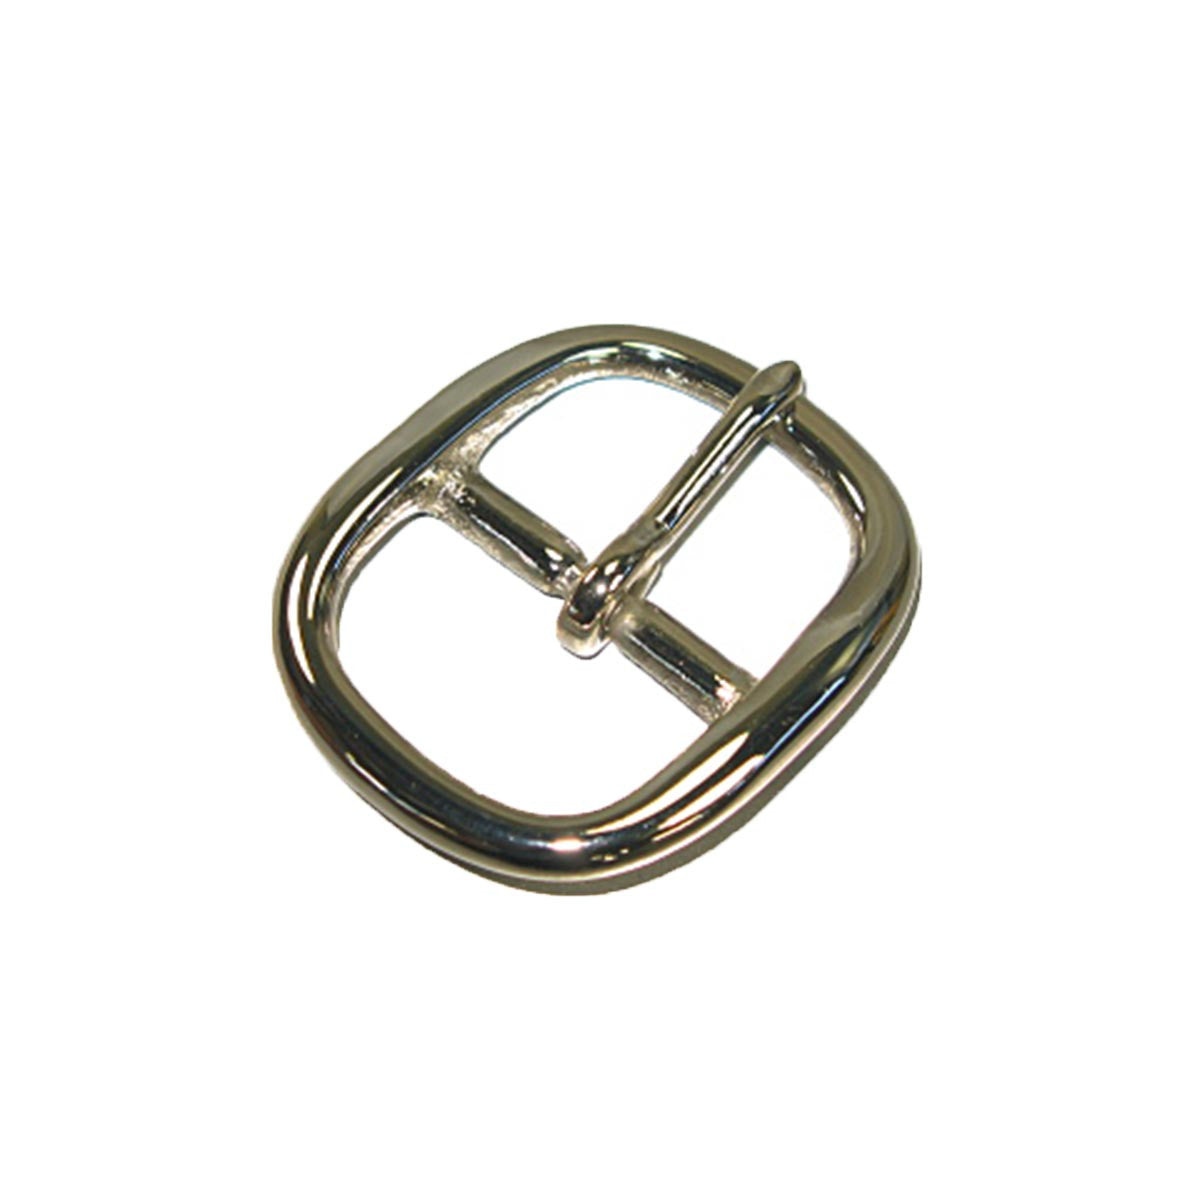 Center Bar Buckle Solid Brass/Nickel Plated - 3 Sizes